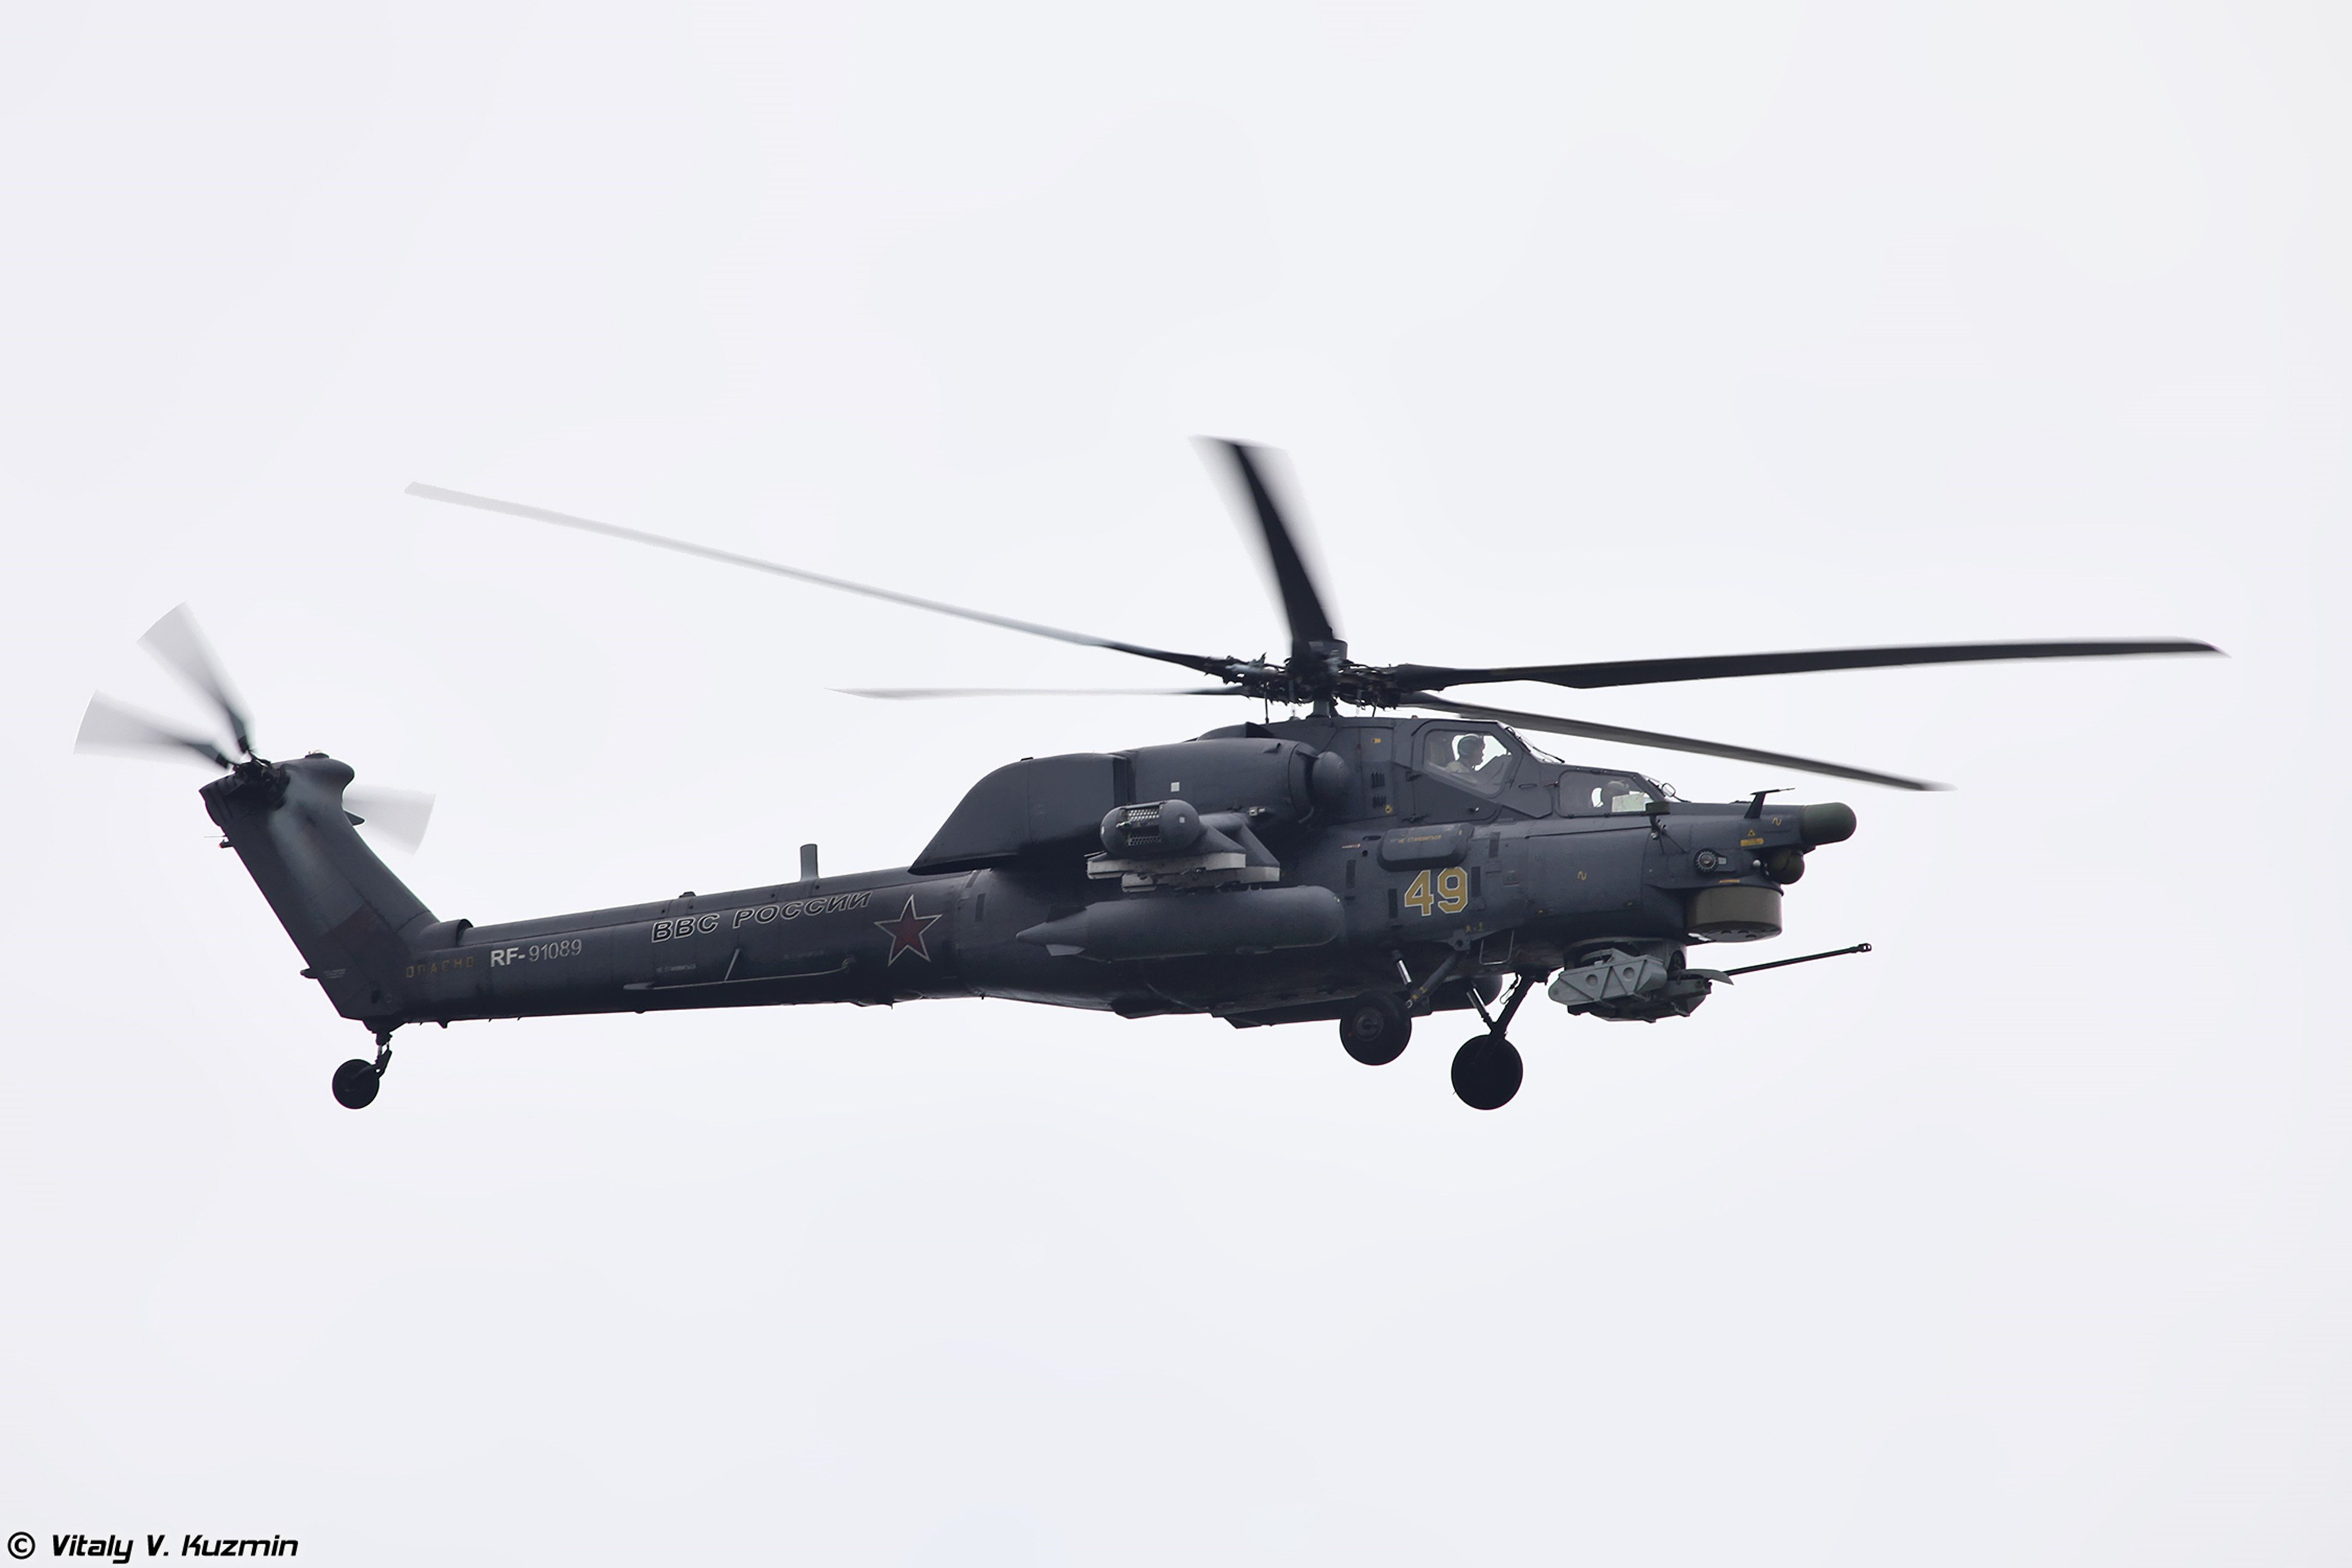 Russian Red Star Russia Helicopter Aircraft Military Army Attack Mil-Mi 4000x2667